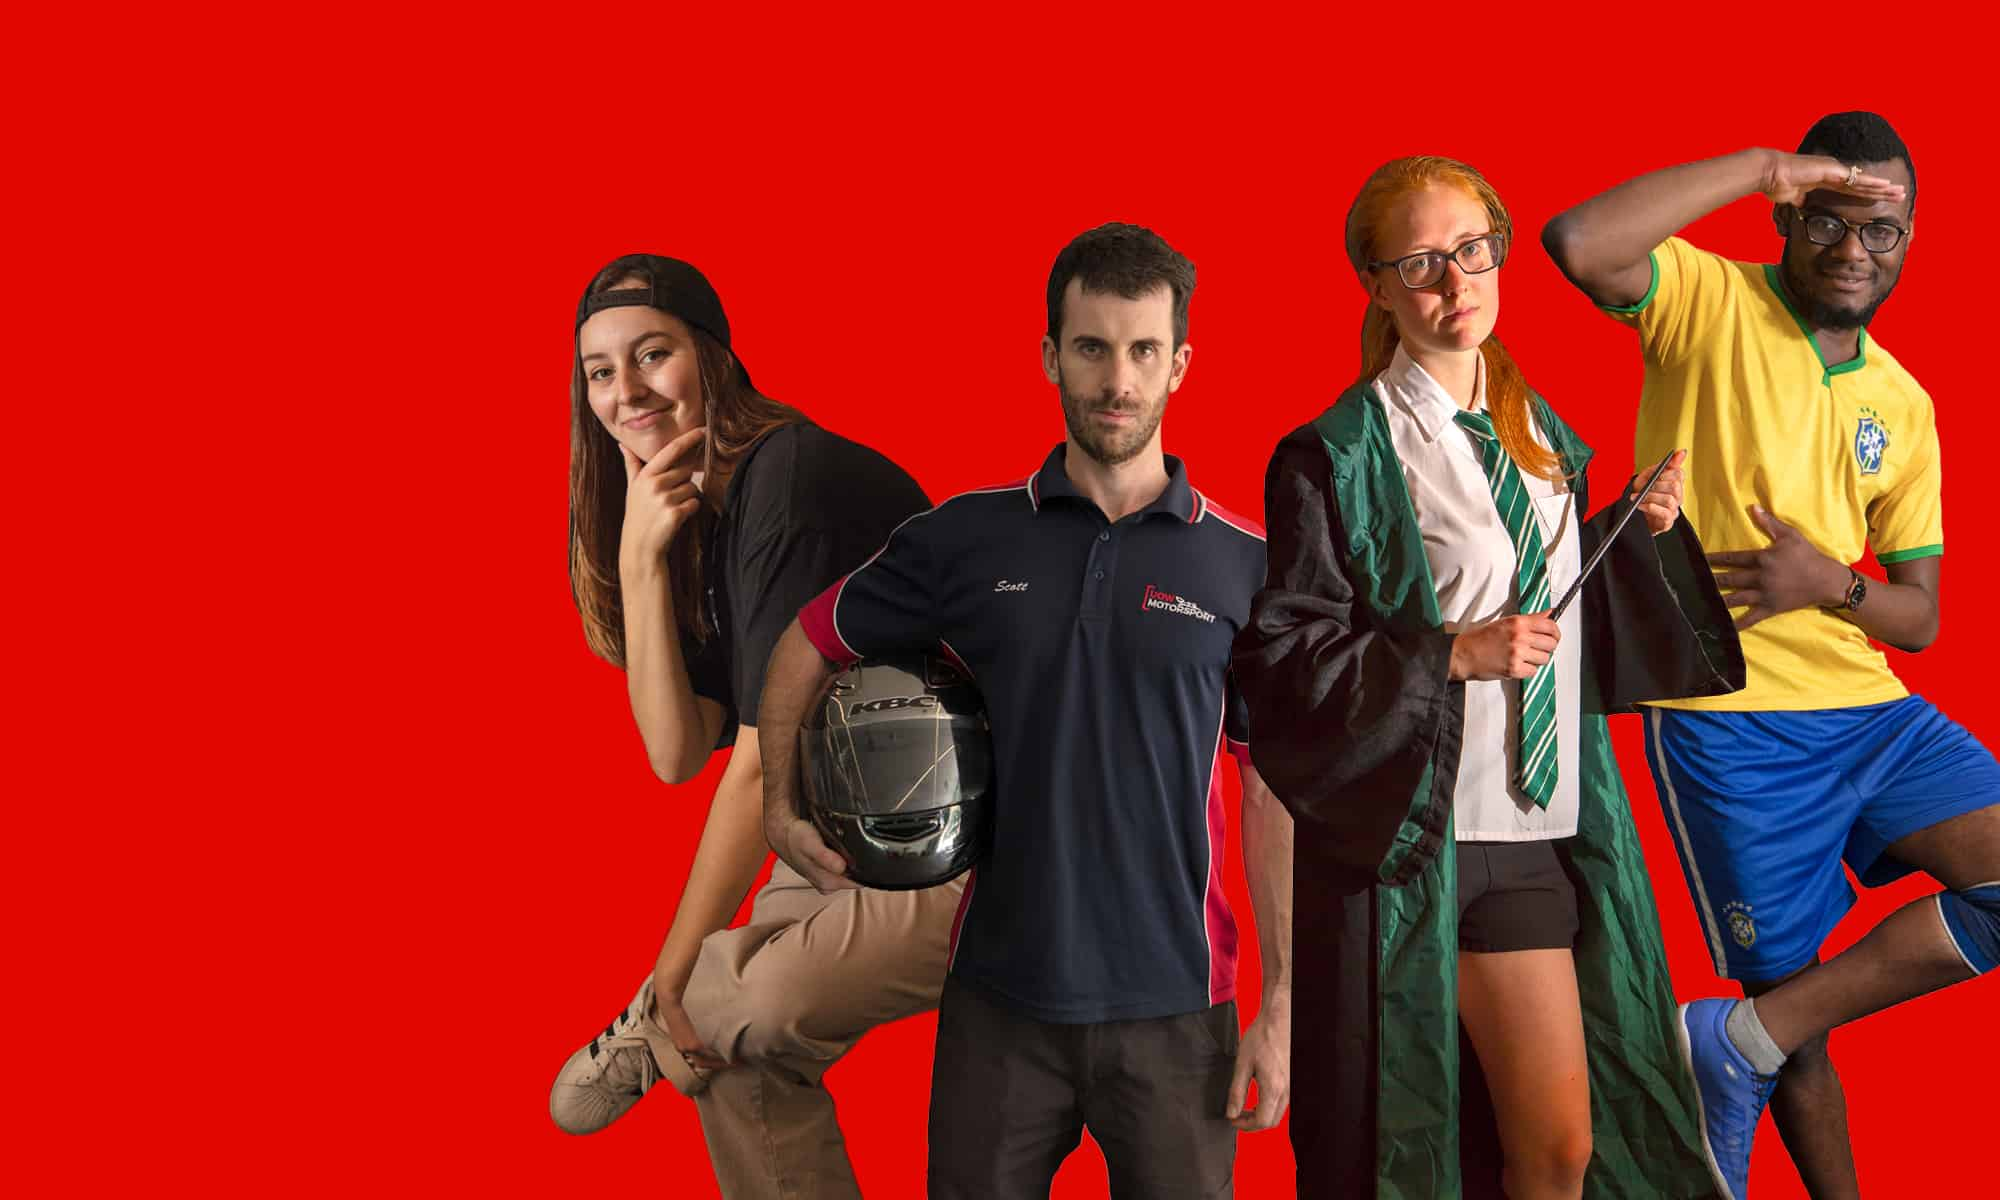 Students who are apart of different clubs at the University of Wollongong.